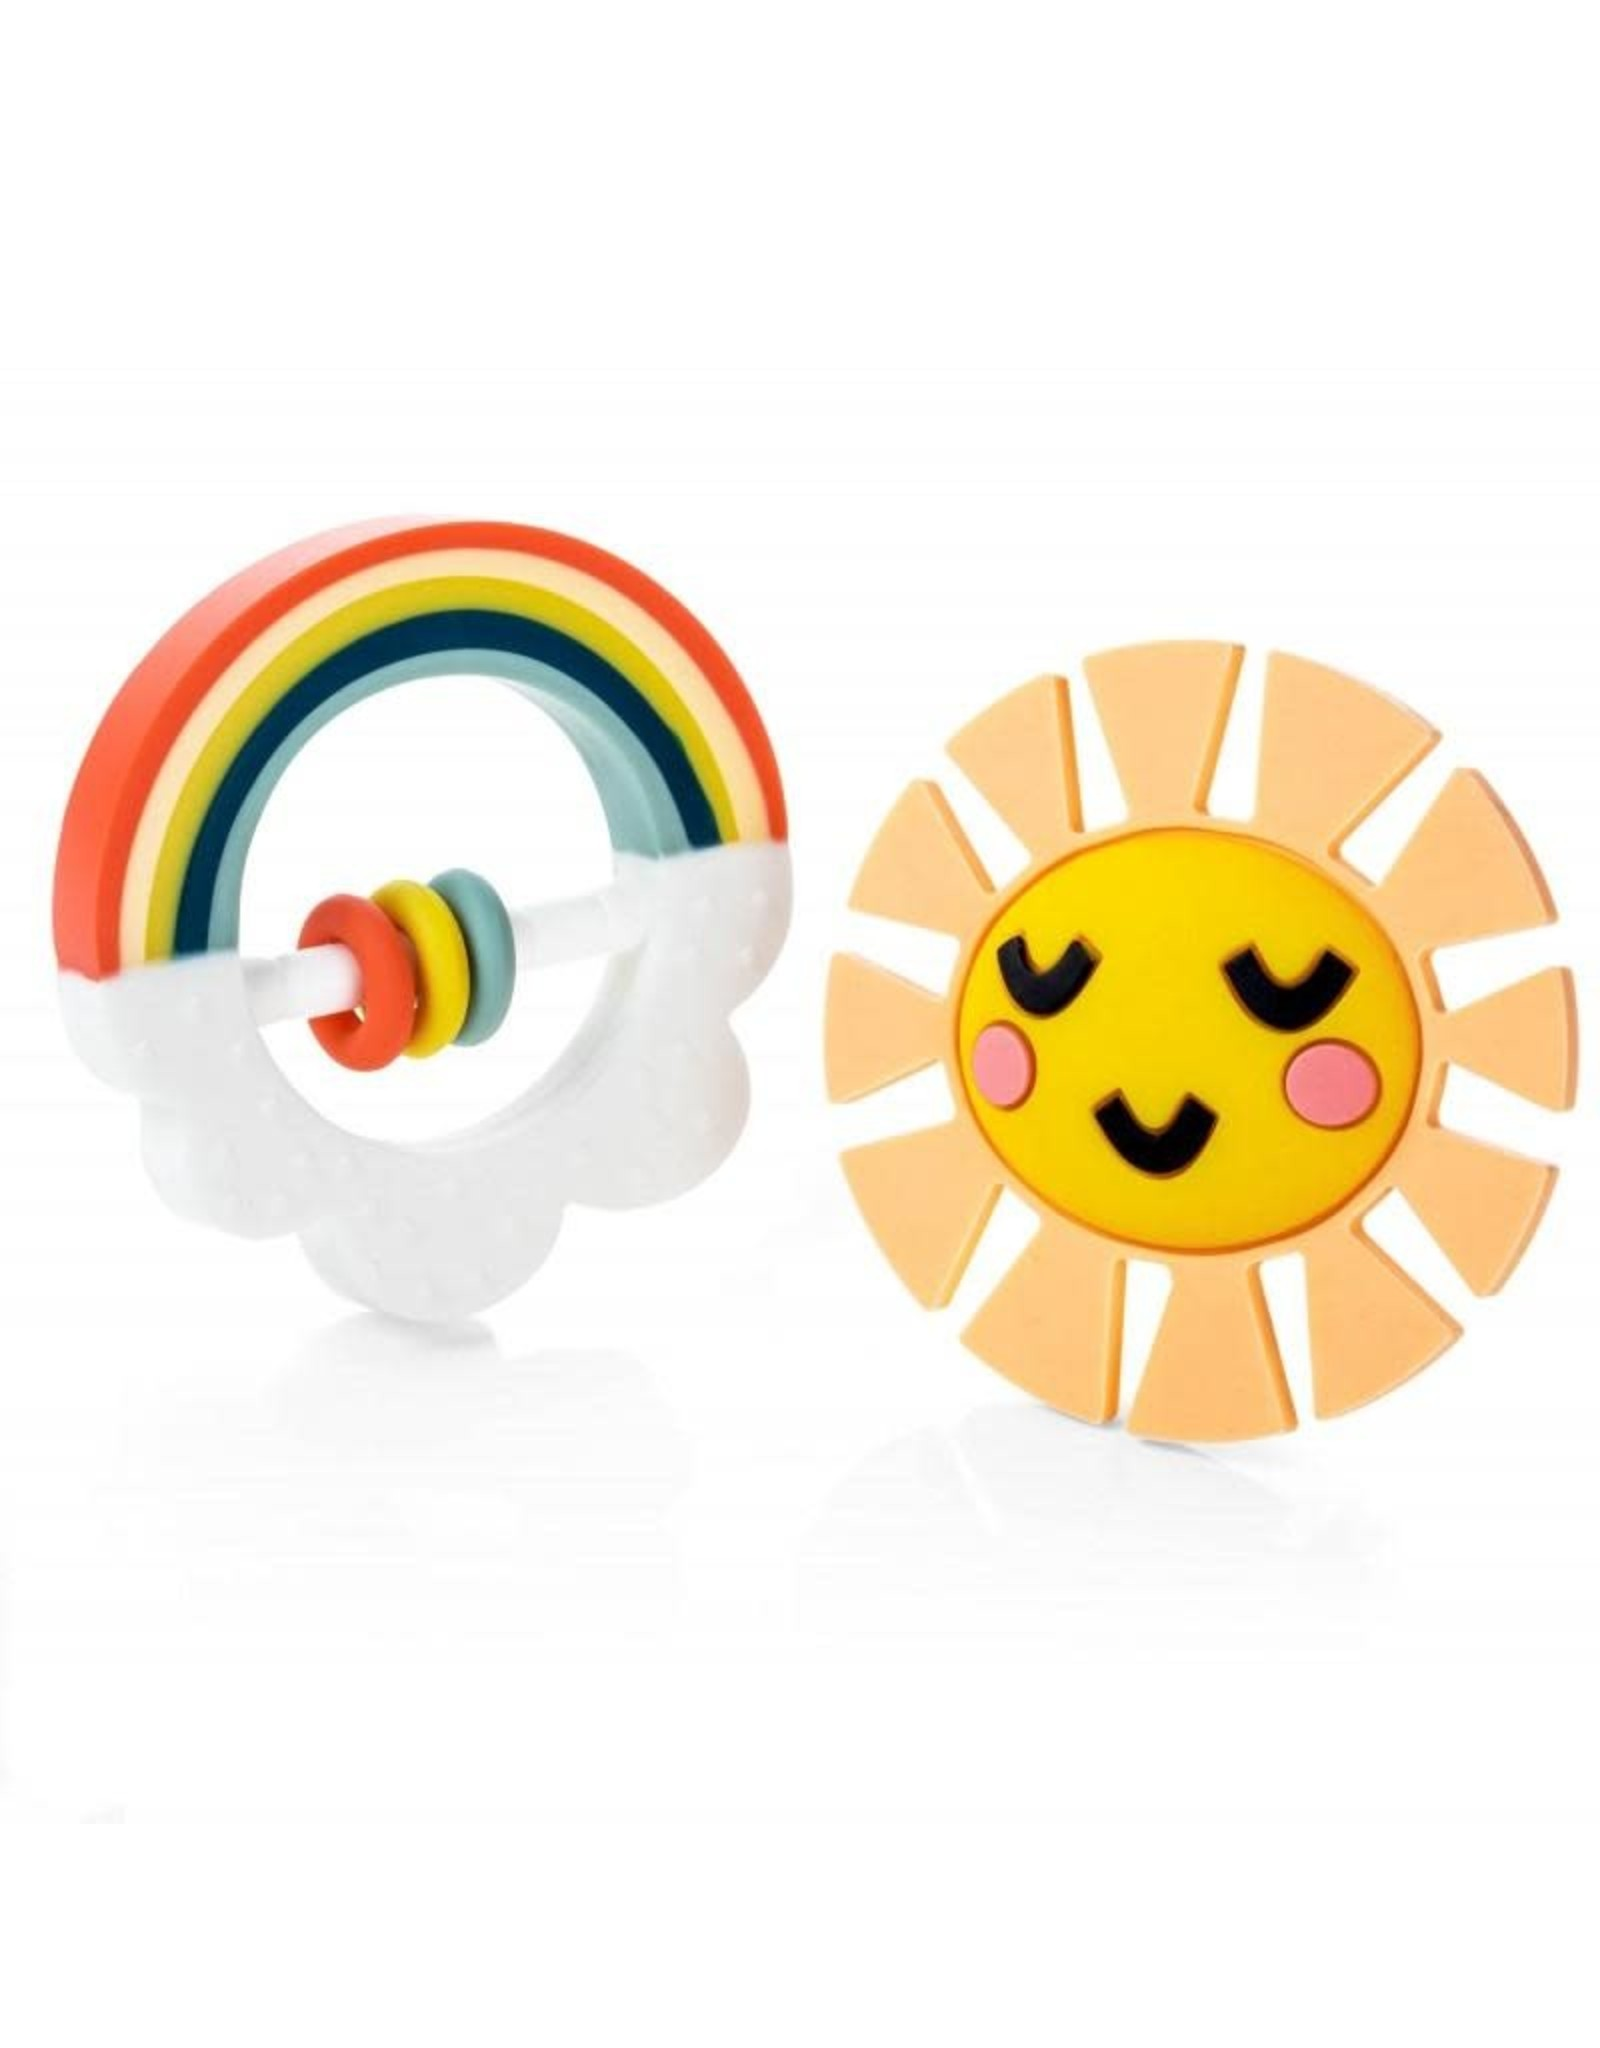 Lucy Darling Little Rainbow Teether Toy   Lucy Darling